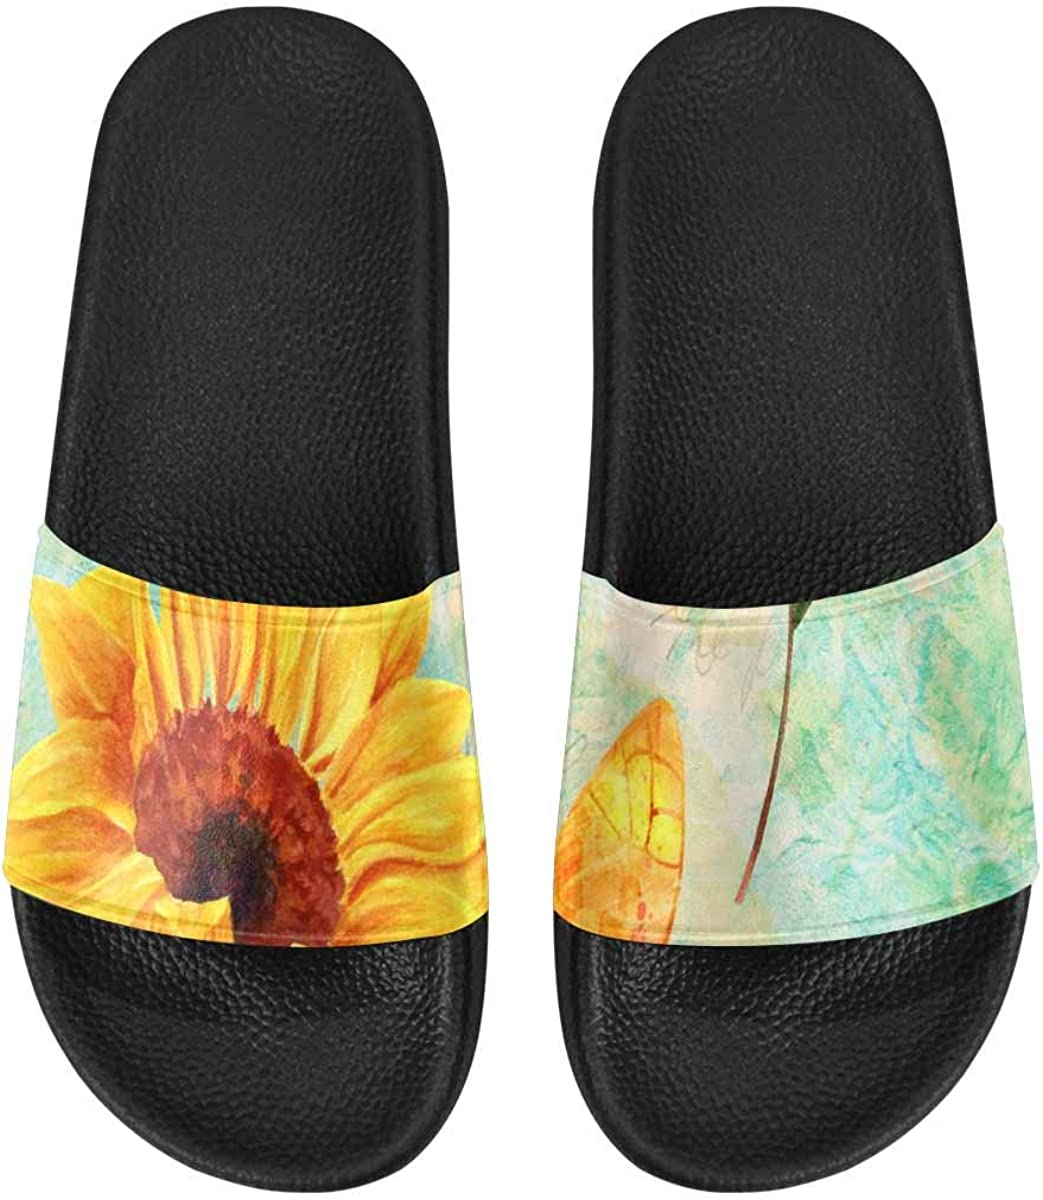 InterestPrint Women's Outdoor Sandals Breathable and Comfortable Watercolor Sloth Pink Flower